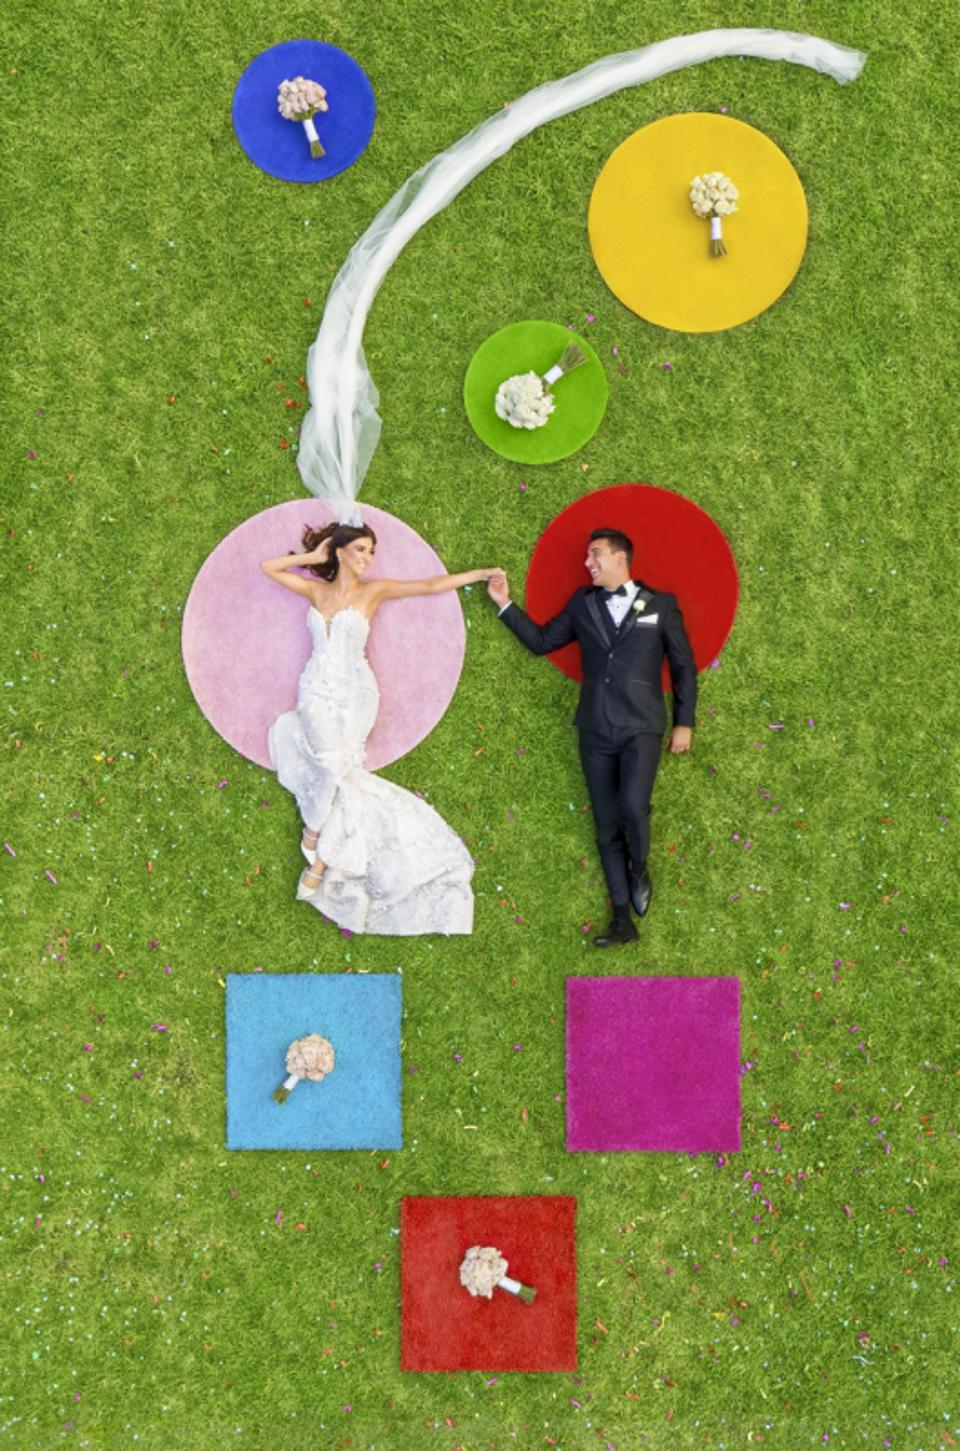 Siena prize winning drone photo of wedding couple in park.